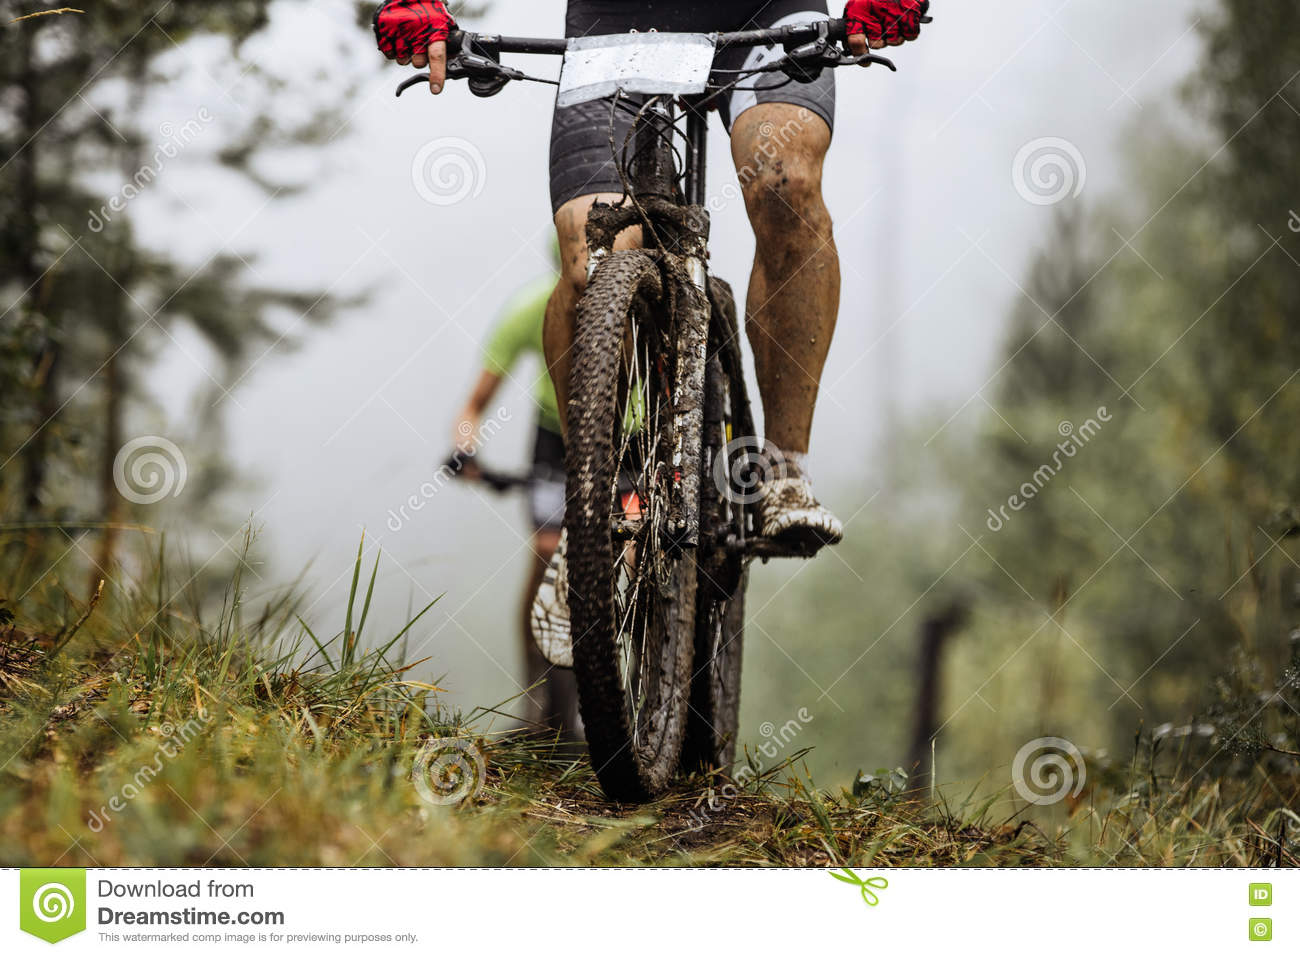 Closeup wheel mountainbike and feet rider in spray of dirt